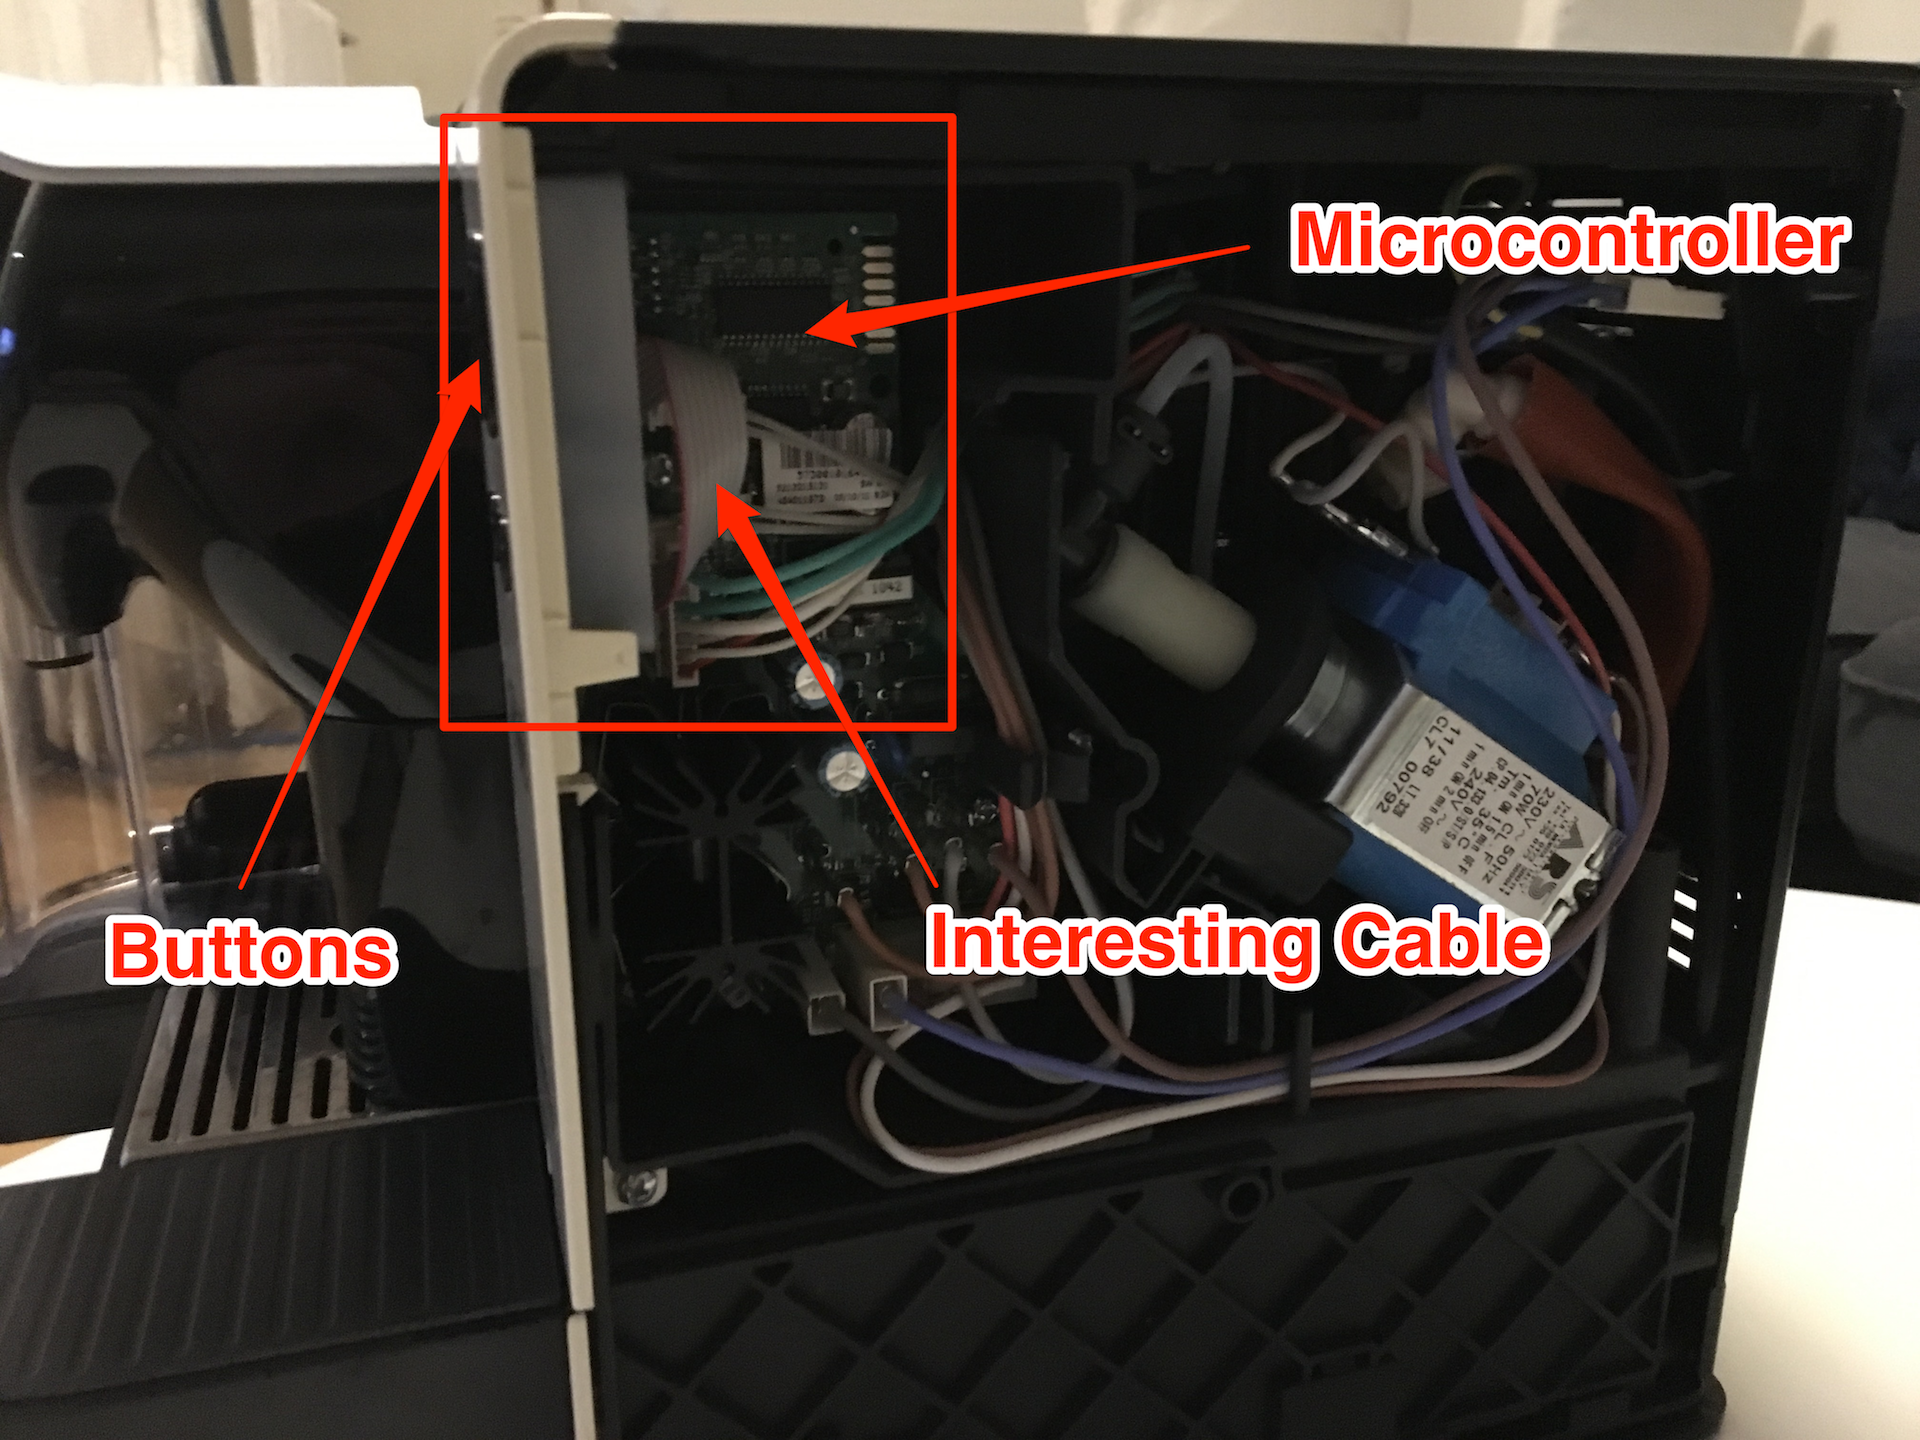 Annotated Picture of opened Latissima highlighting Buttons and Microcontroller